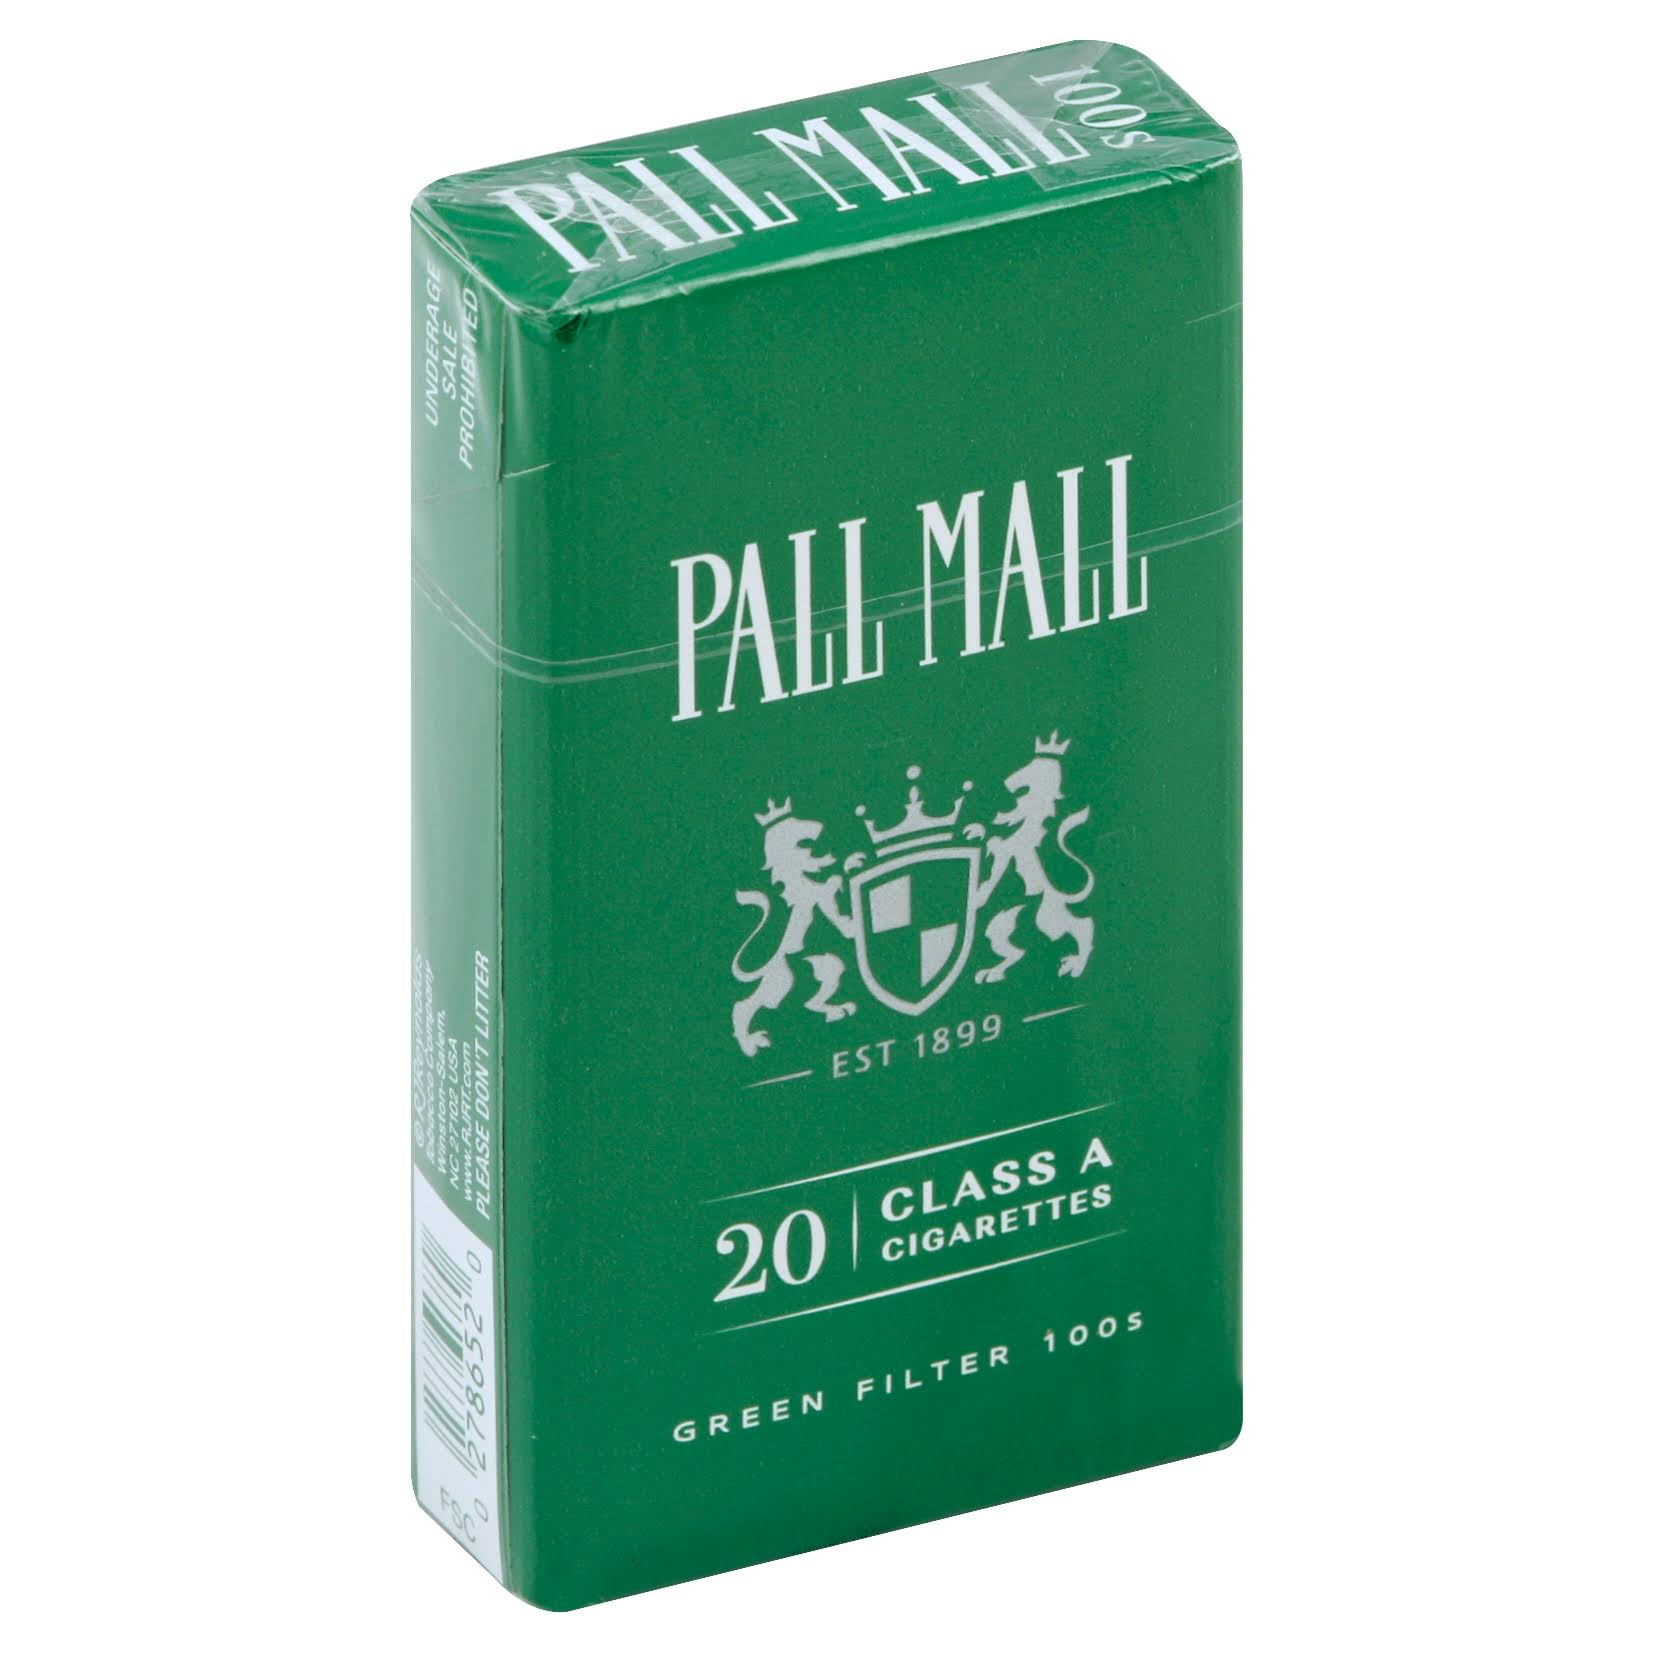 Pall Mall Cigarettes, Menthol, Green Filter 100s - 20 cigarettes